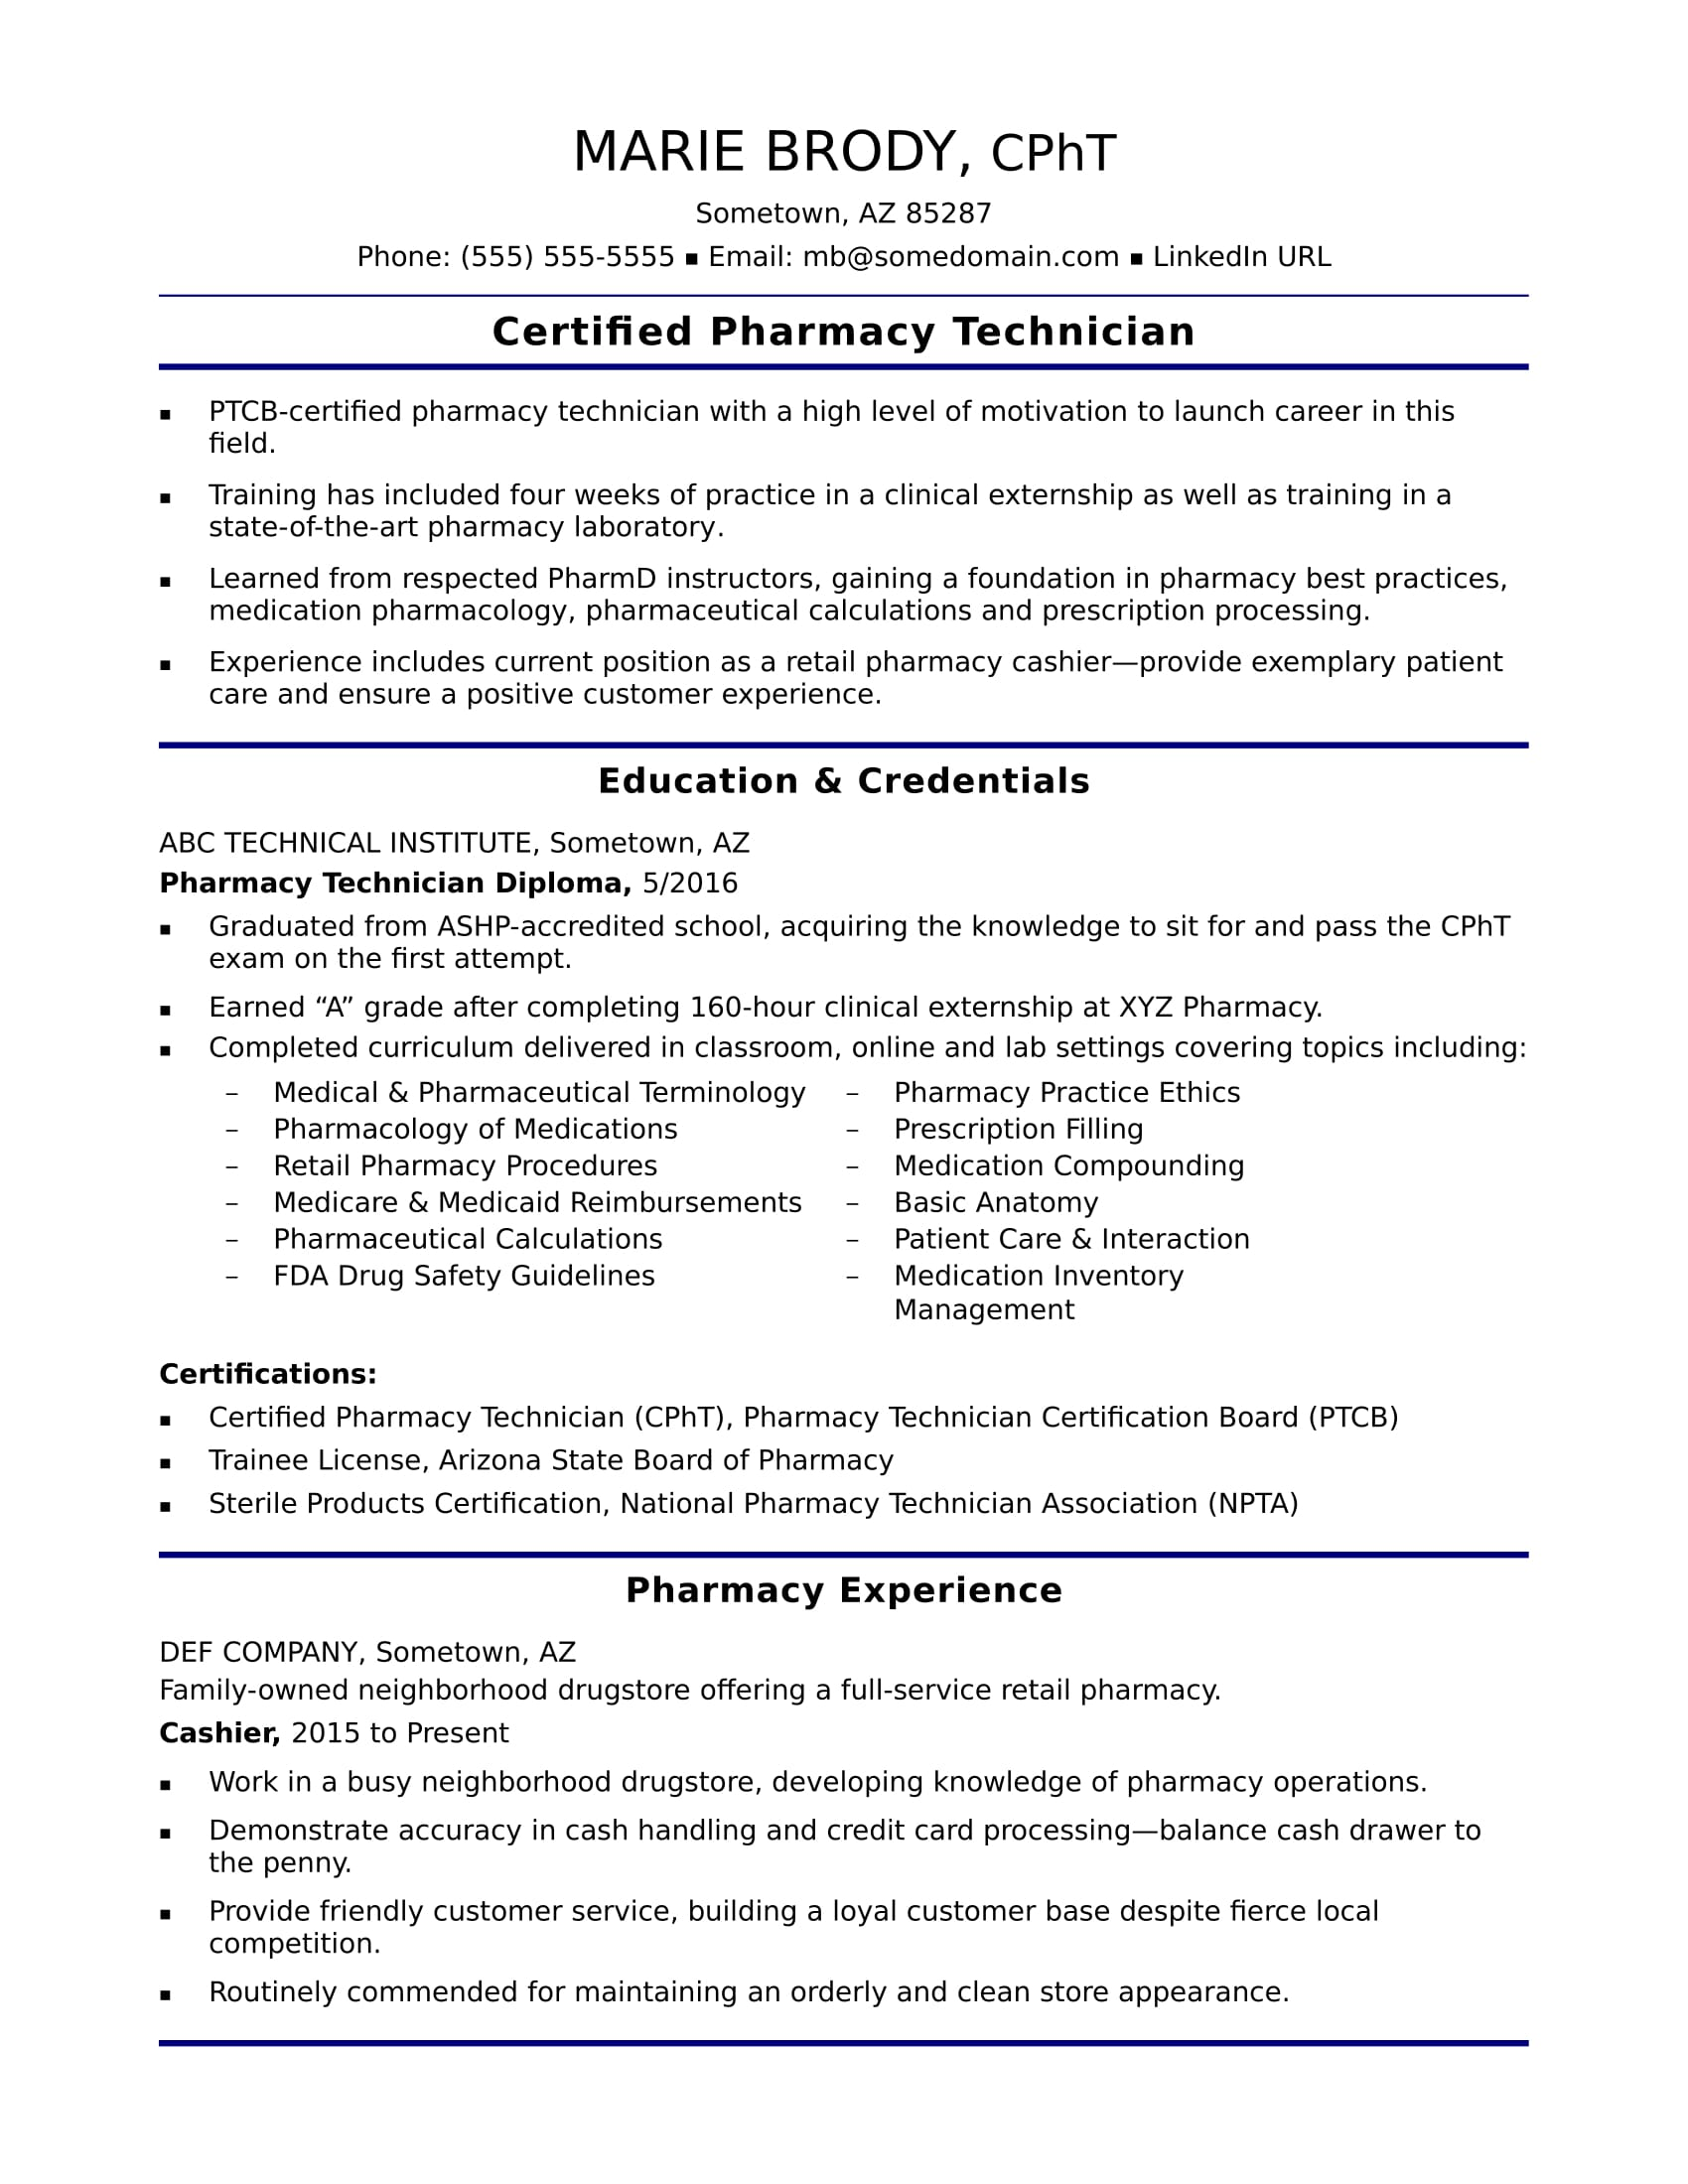 resume Pharmacy Technician Resumes entry level pharmacy technician resume sample monster com for an technician